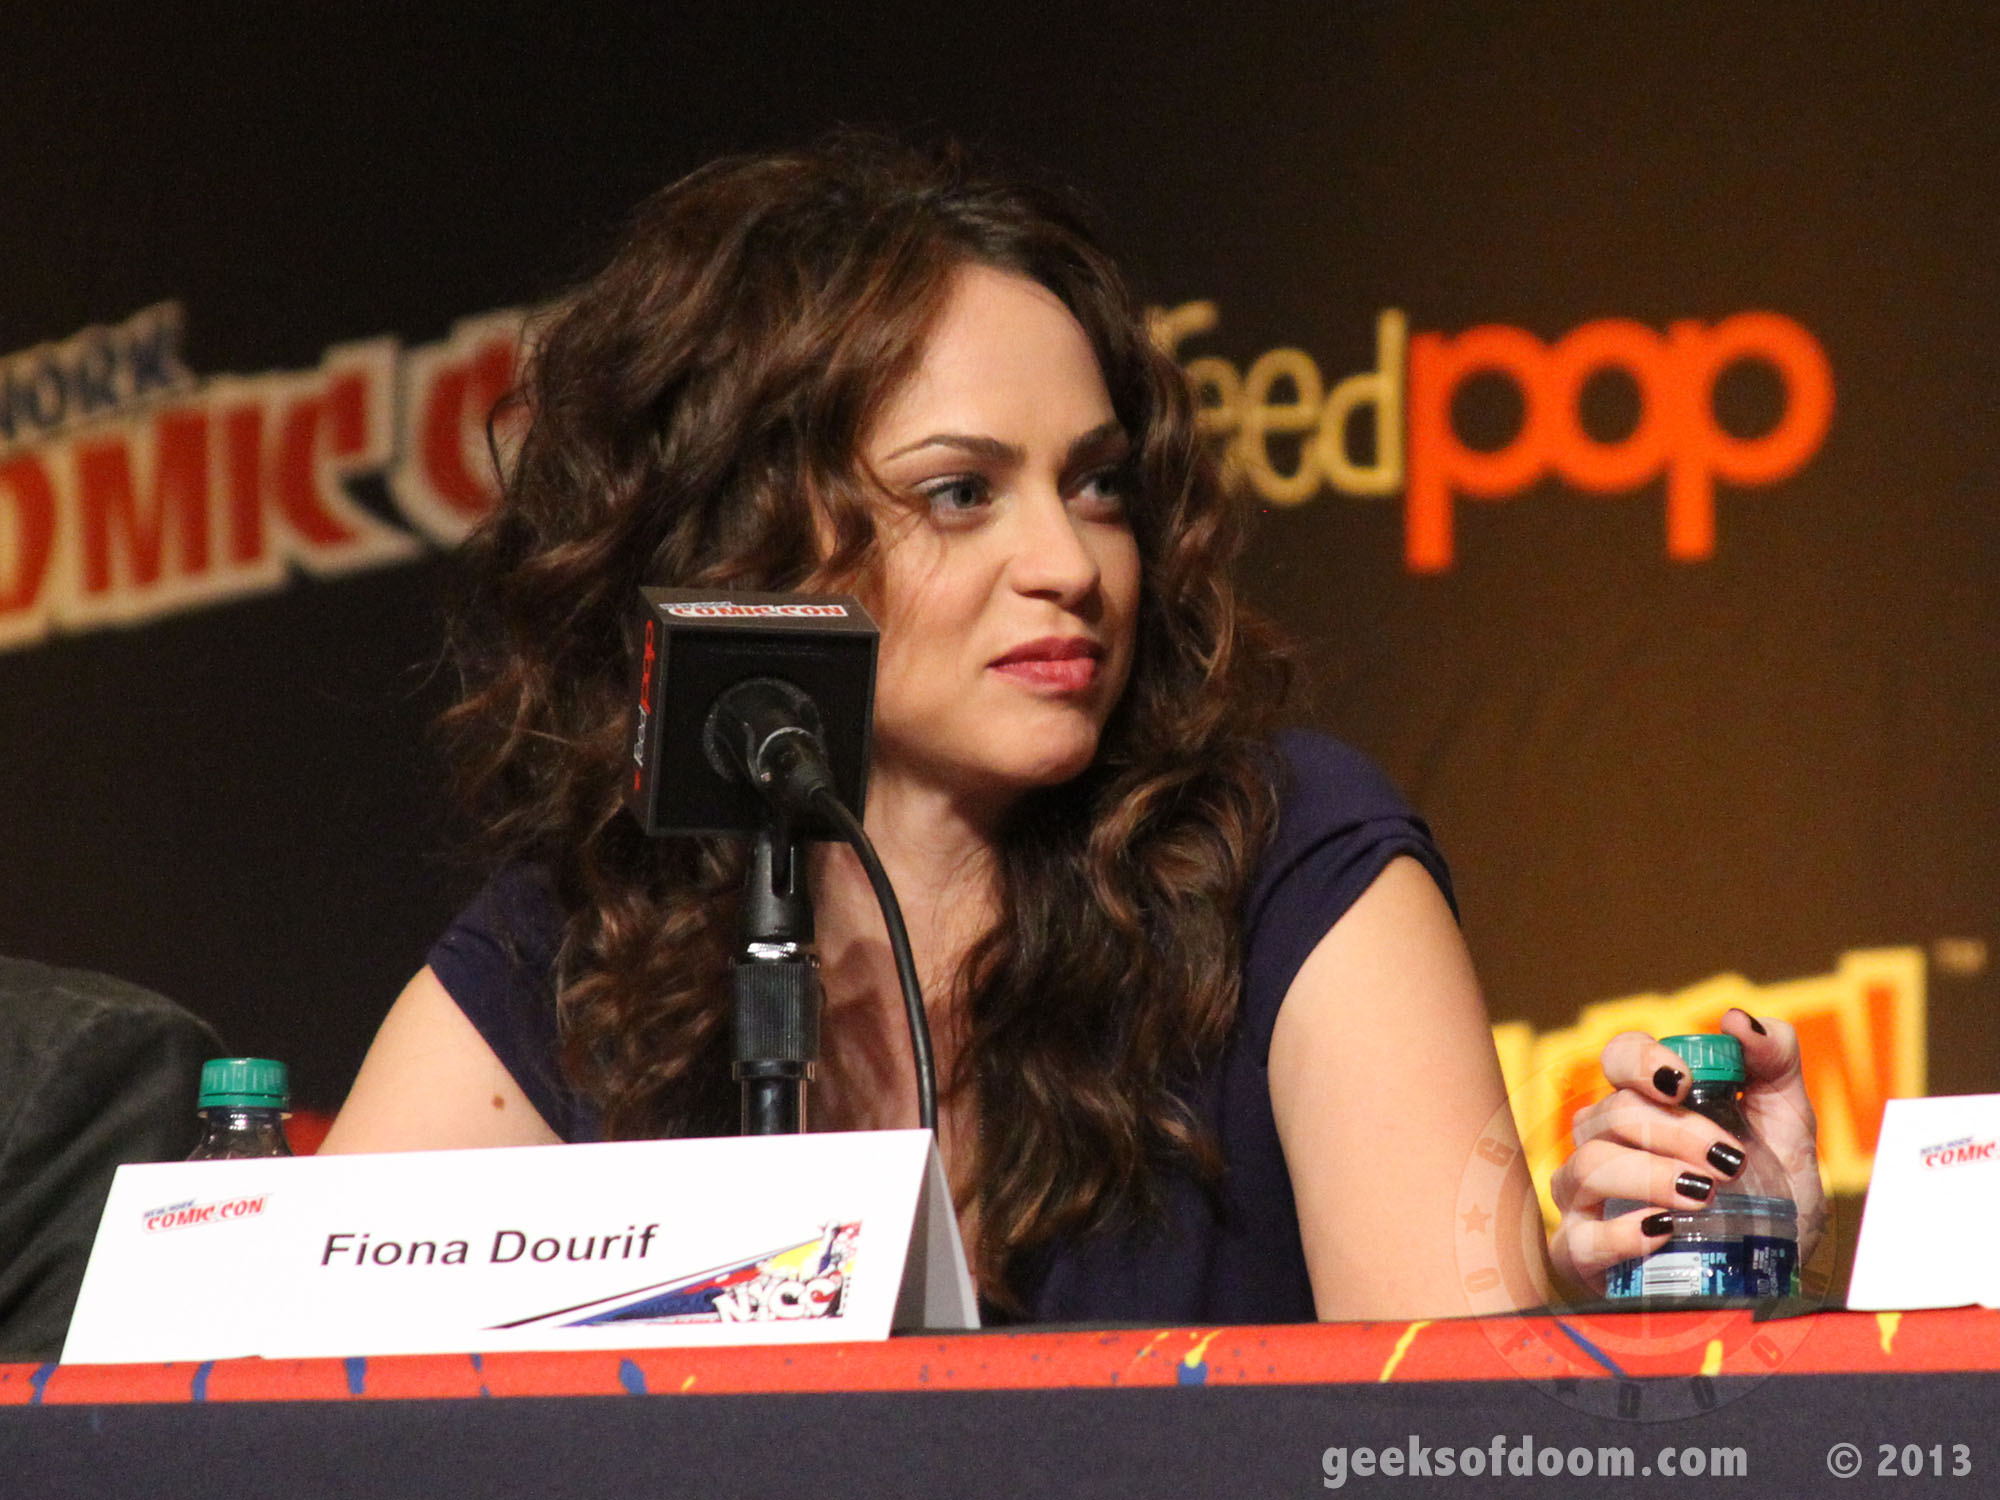 fiona dourif chuckyfiona dourif twitter, fiona dourif brad dourif, fiona dourif wiki, fiona dourif instagram, fiona dourif dirk gently, fiona dourif true blood, fiona dourif father, fiona dourif imdb, fiona dourif, fiona dourif facebook, fiona dourif hot, fiona dourif deadwood, fiona dourif height, fiona dourif curse of chucky, fiona dourif nudography, fiona dourif photos, fiona dourif gagged, fiona dourif net worth, fiona dourif 2015, fiona dourif chucky